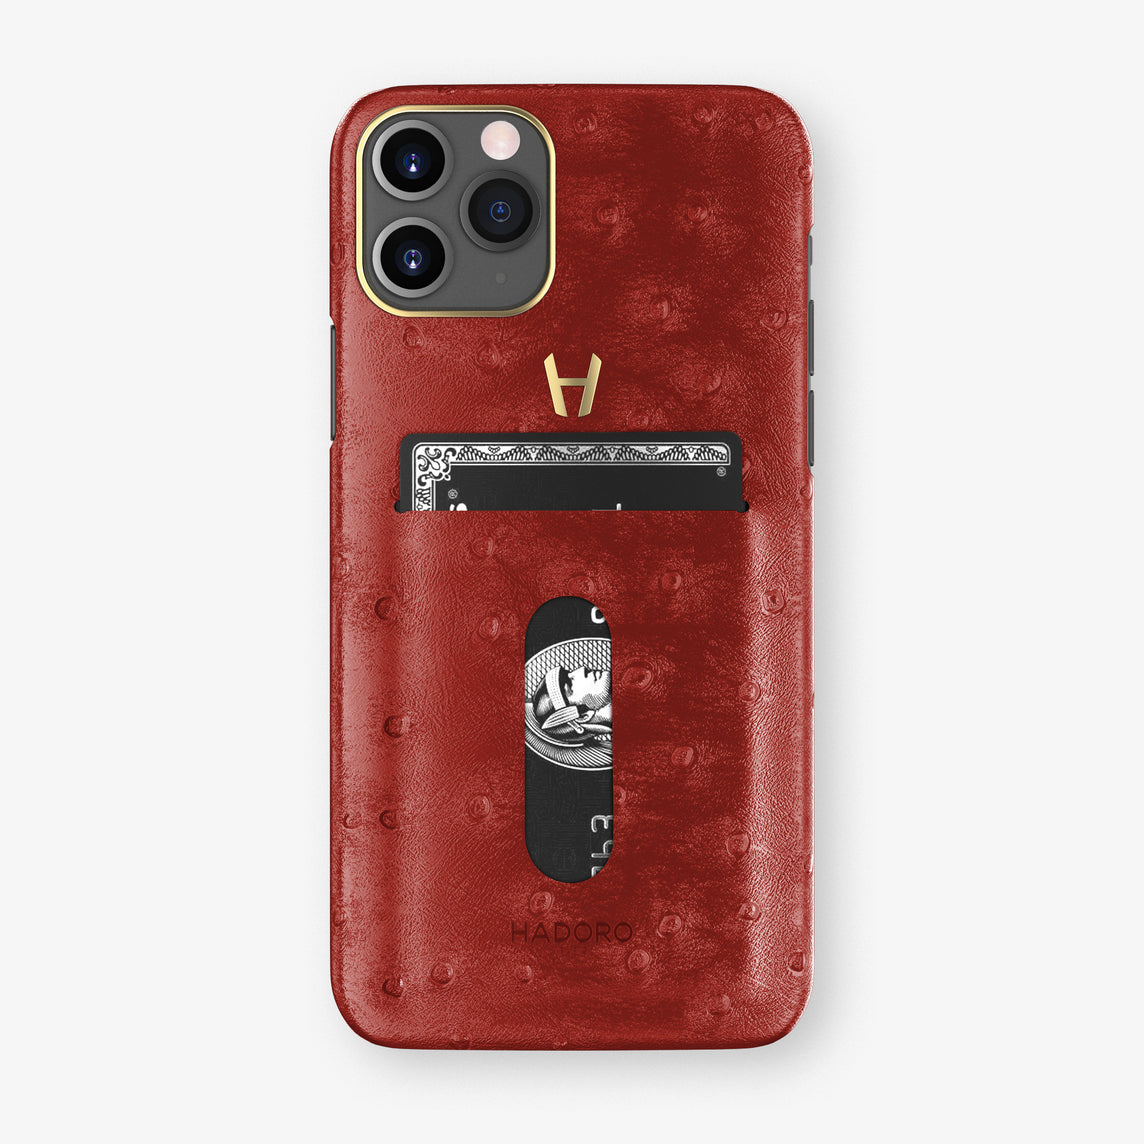 Ostrich Card Holder Case iPhone 11 Pro | Red - Yellow Gold